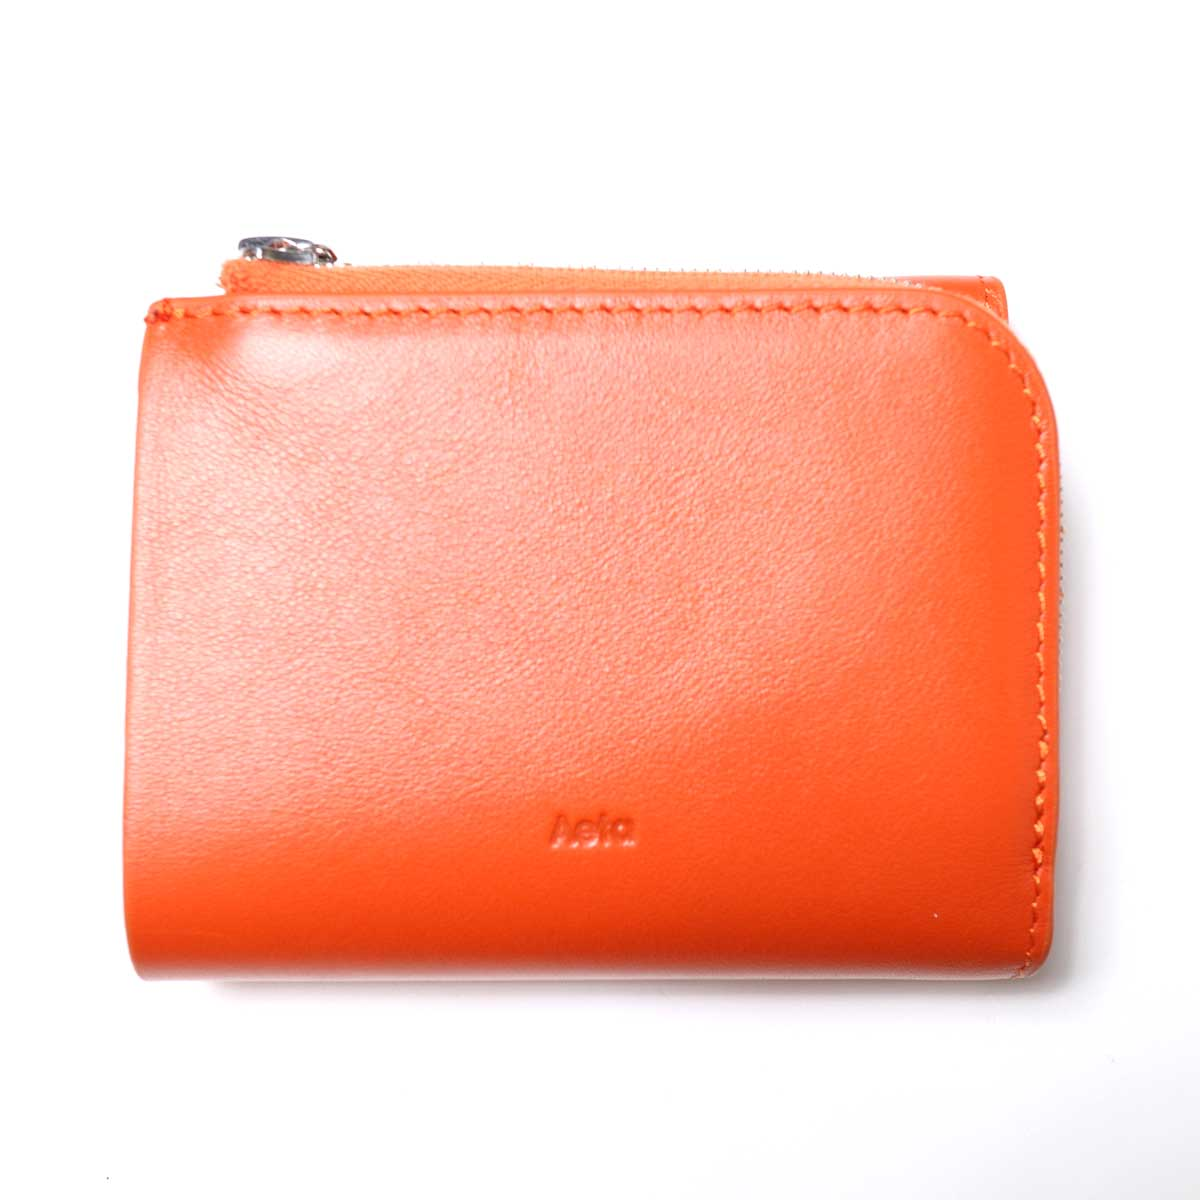 Aeta / FG LEATHER WALLET typeA (ORANGE) 正面